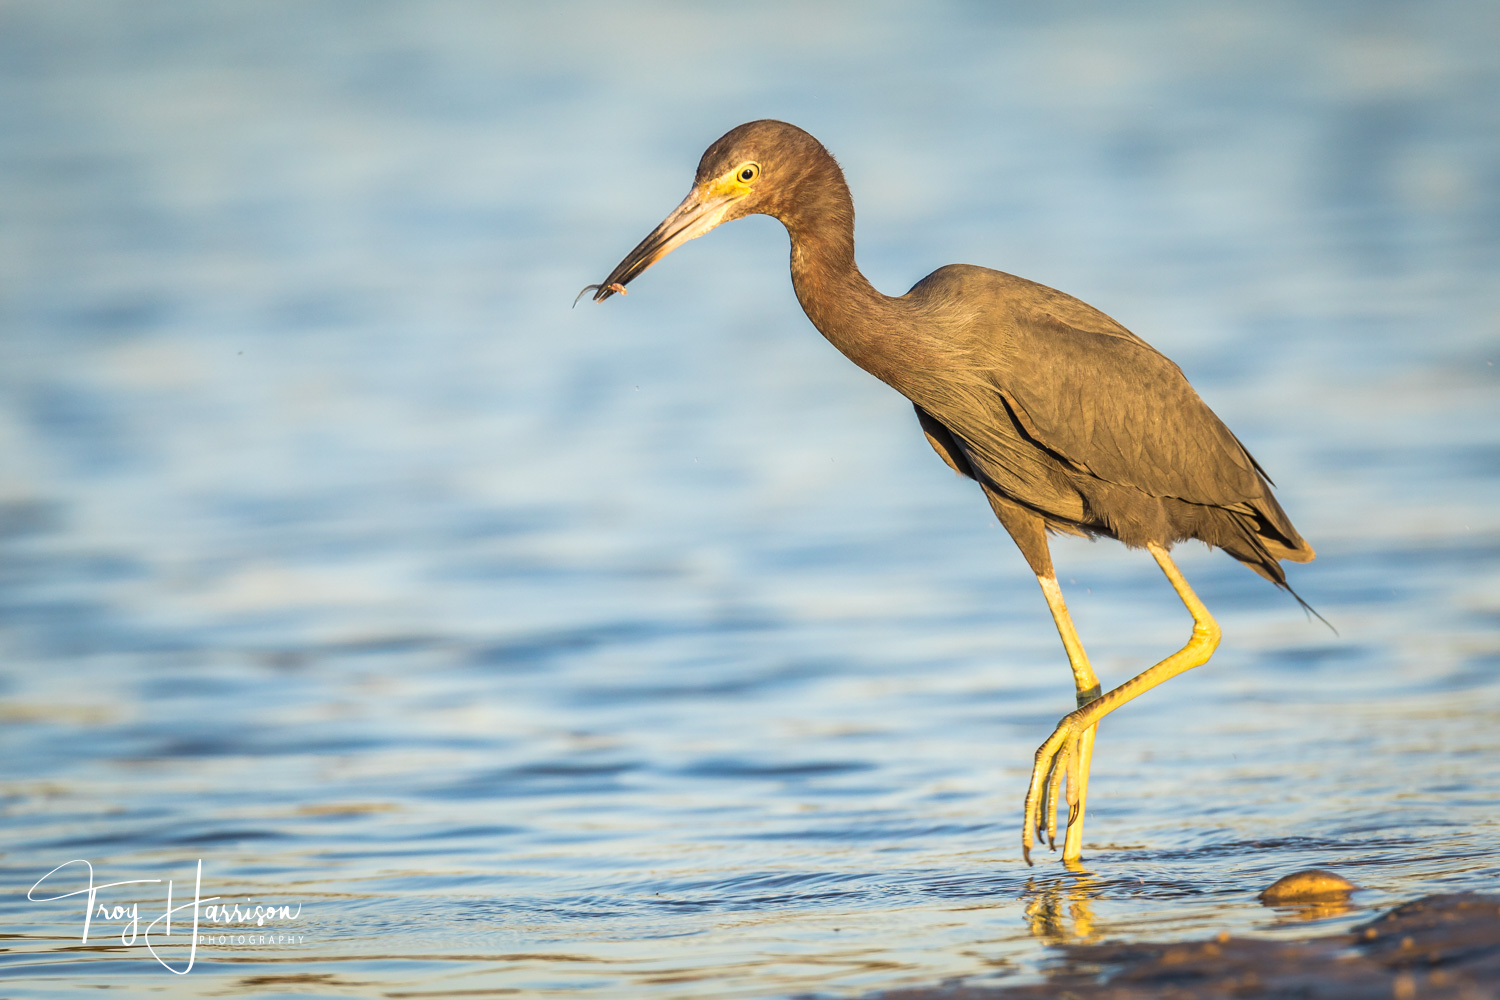 1 - Little Blue Heron, Everglades, Jan. 2019, img 138.jpg